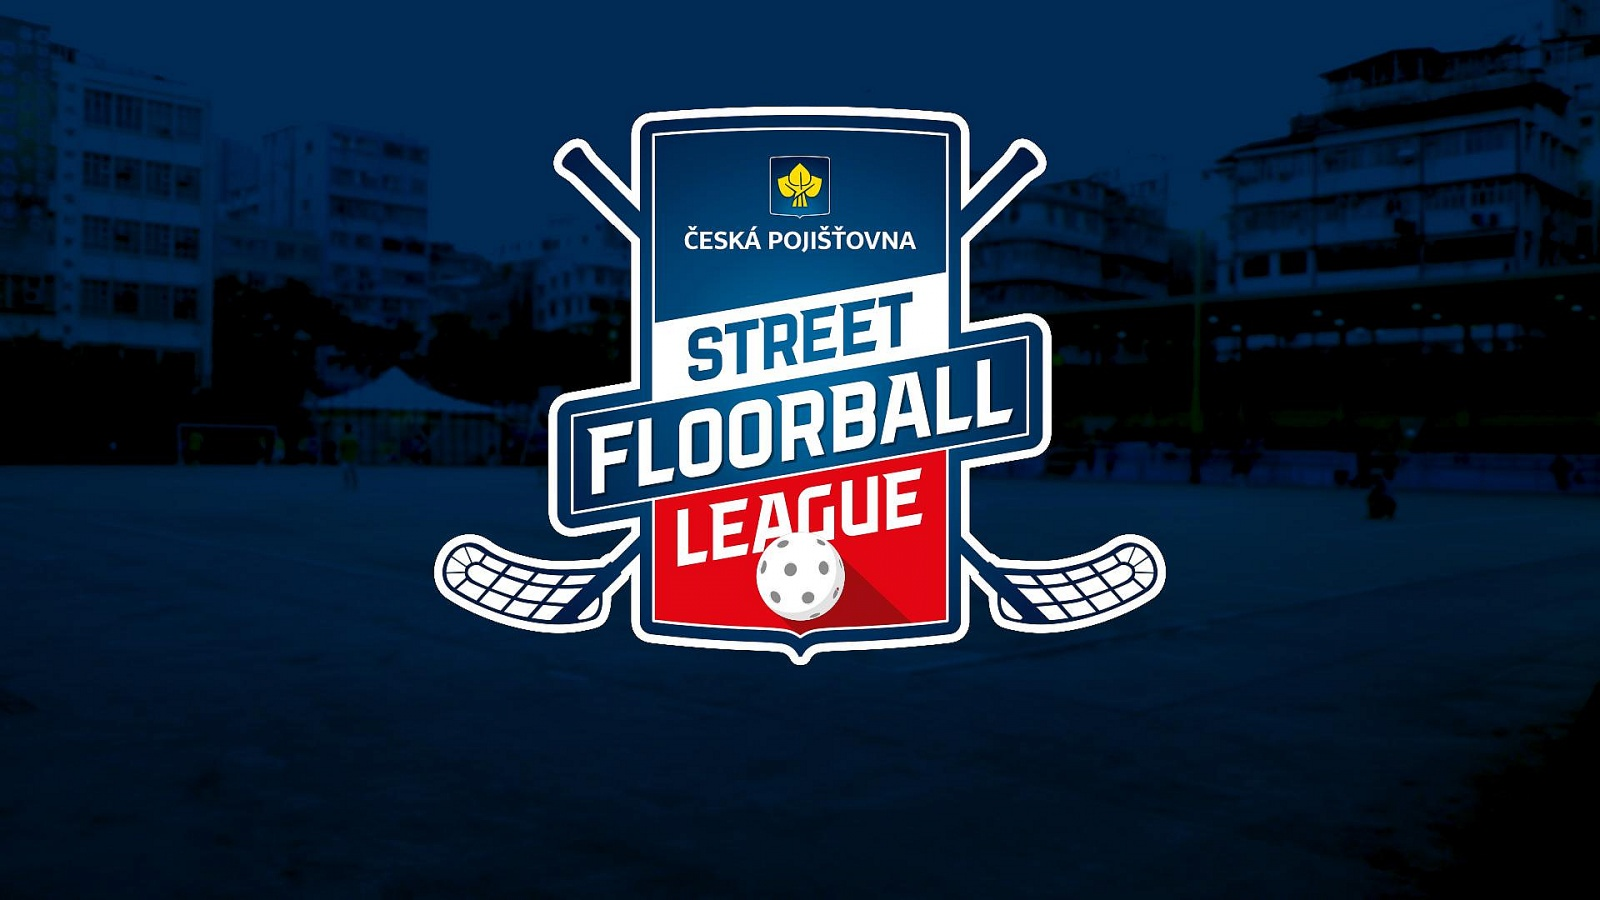 Street Floorball League